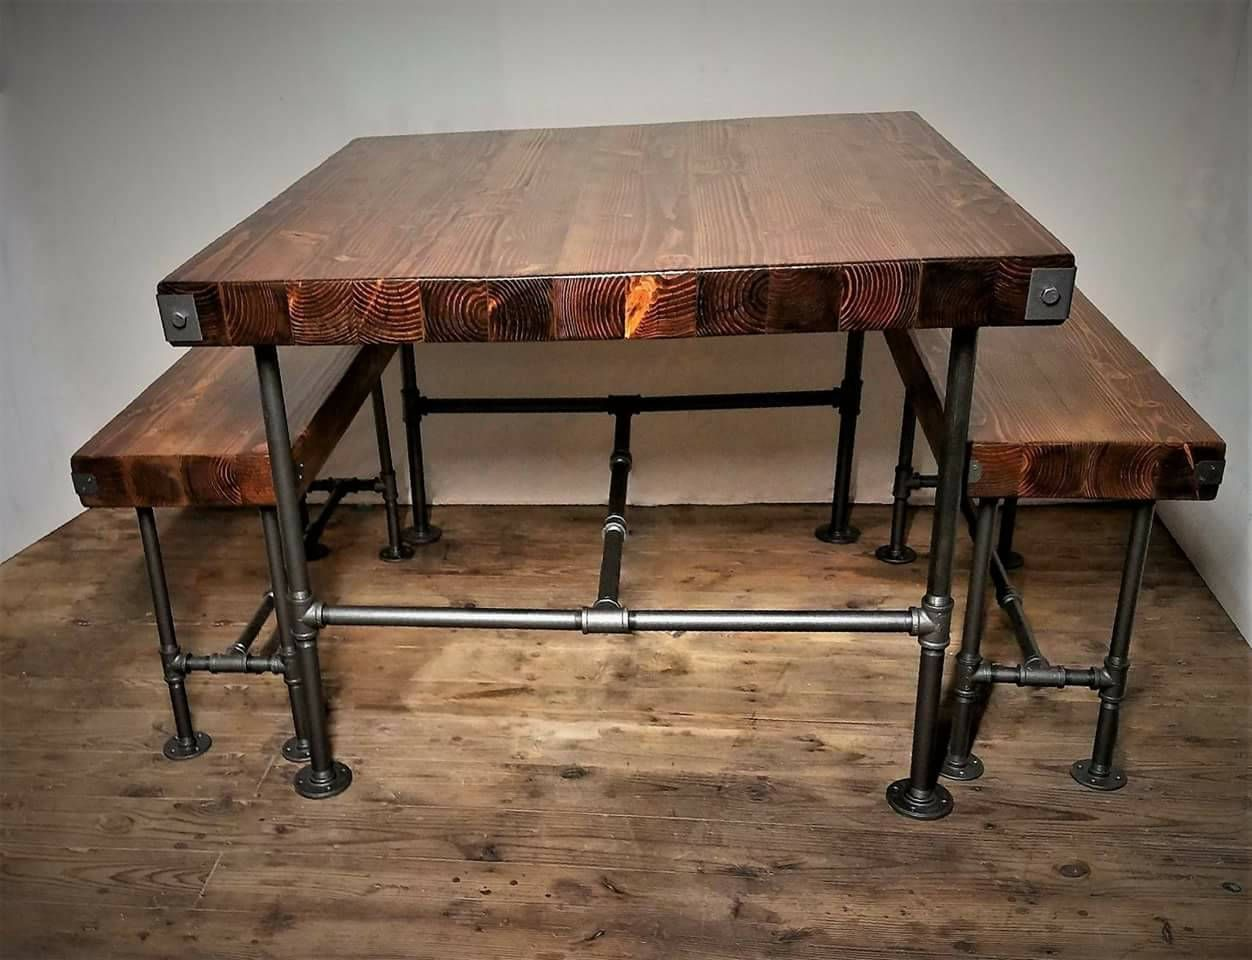 Table Bench Set Custom Wood Steampunk Rustic Industrial Steel Pipes Counter Height Table And Bench Table And Bench Set Counter Height Table Steampunk Table